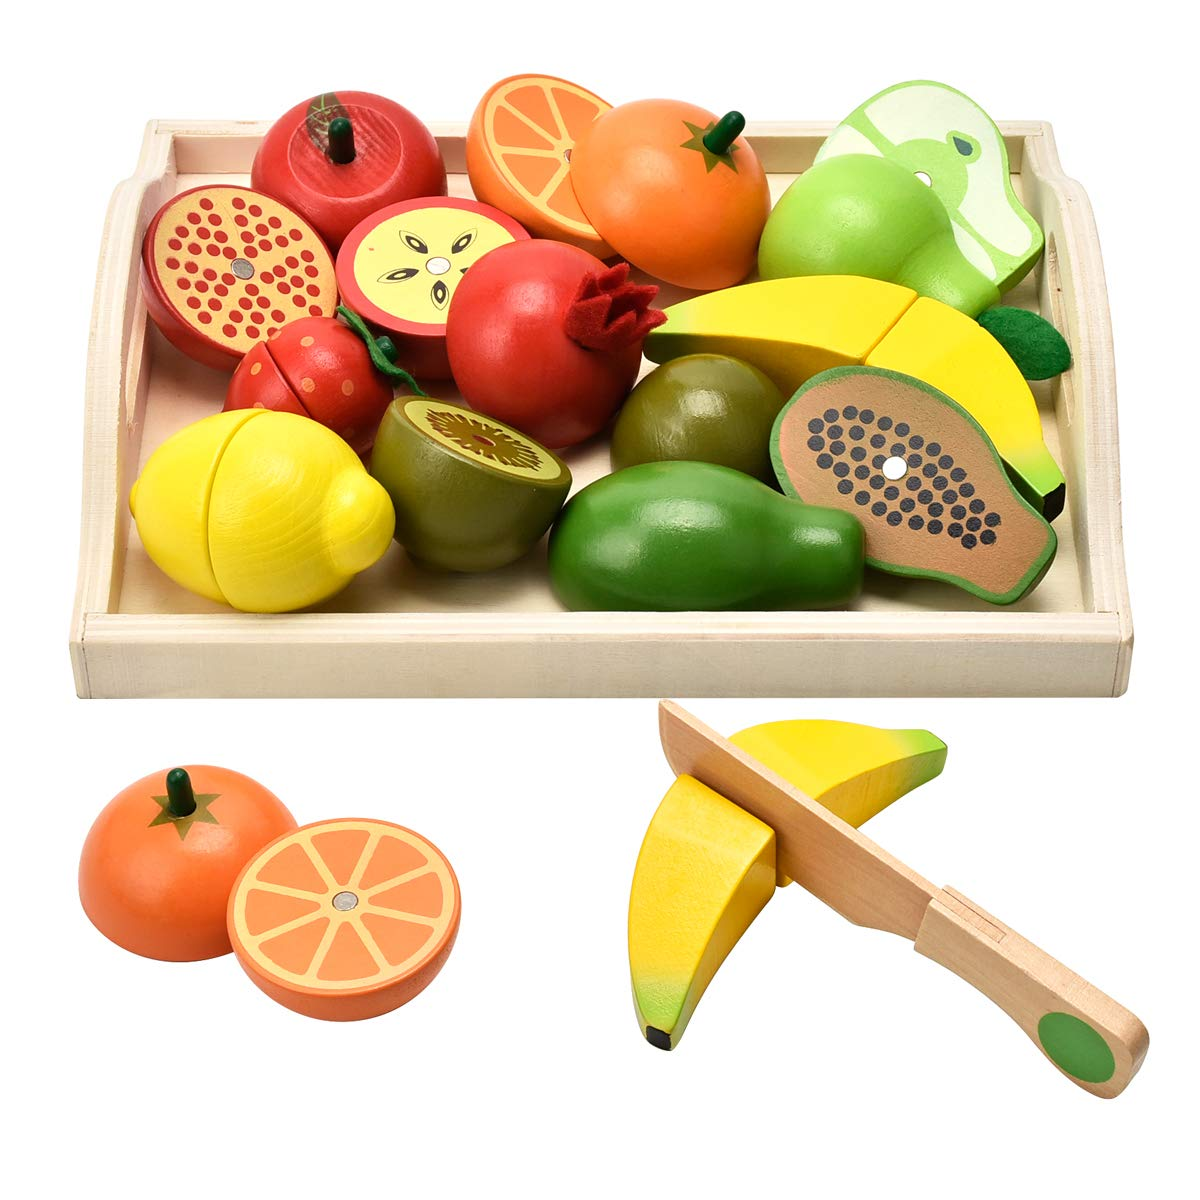 CARLORBO Wooden Toys for 2 Year Old - PretendPlay Food Set for KidsPlayKitchen,9 Cuttable Toy Fruit and Veg with Wooden Knif and Tray,Gift Idea for Boy Girl Birthday by CARLORBO